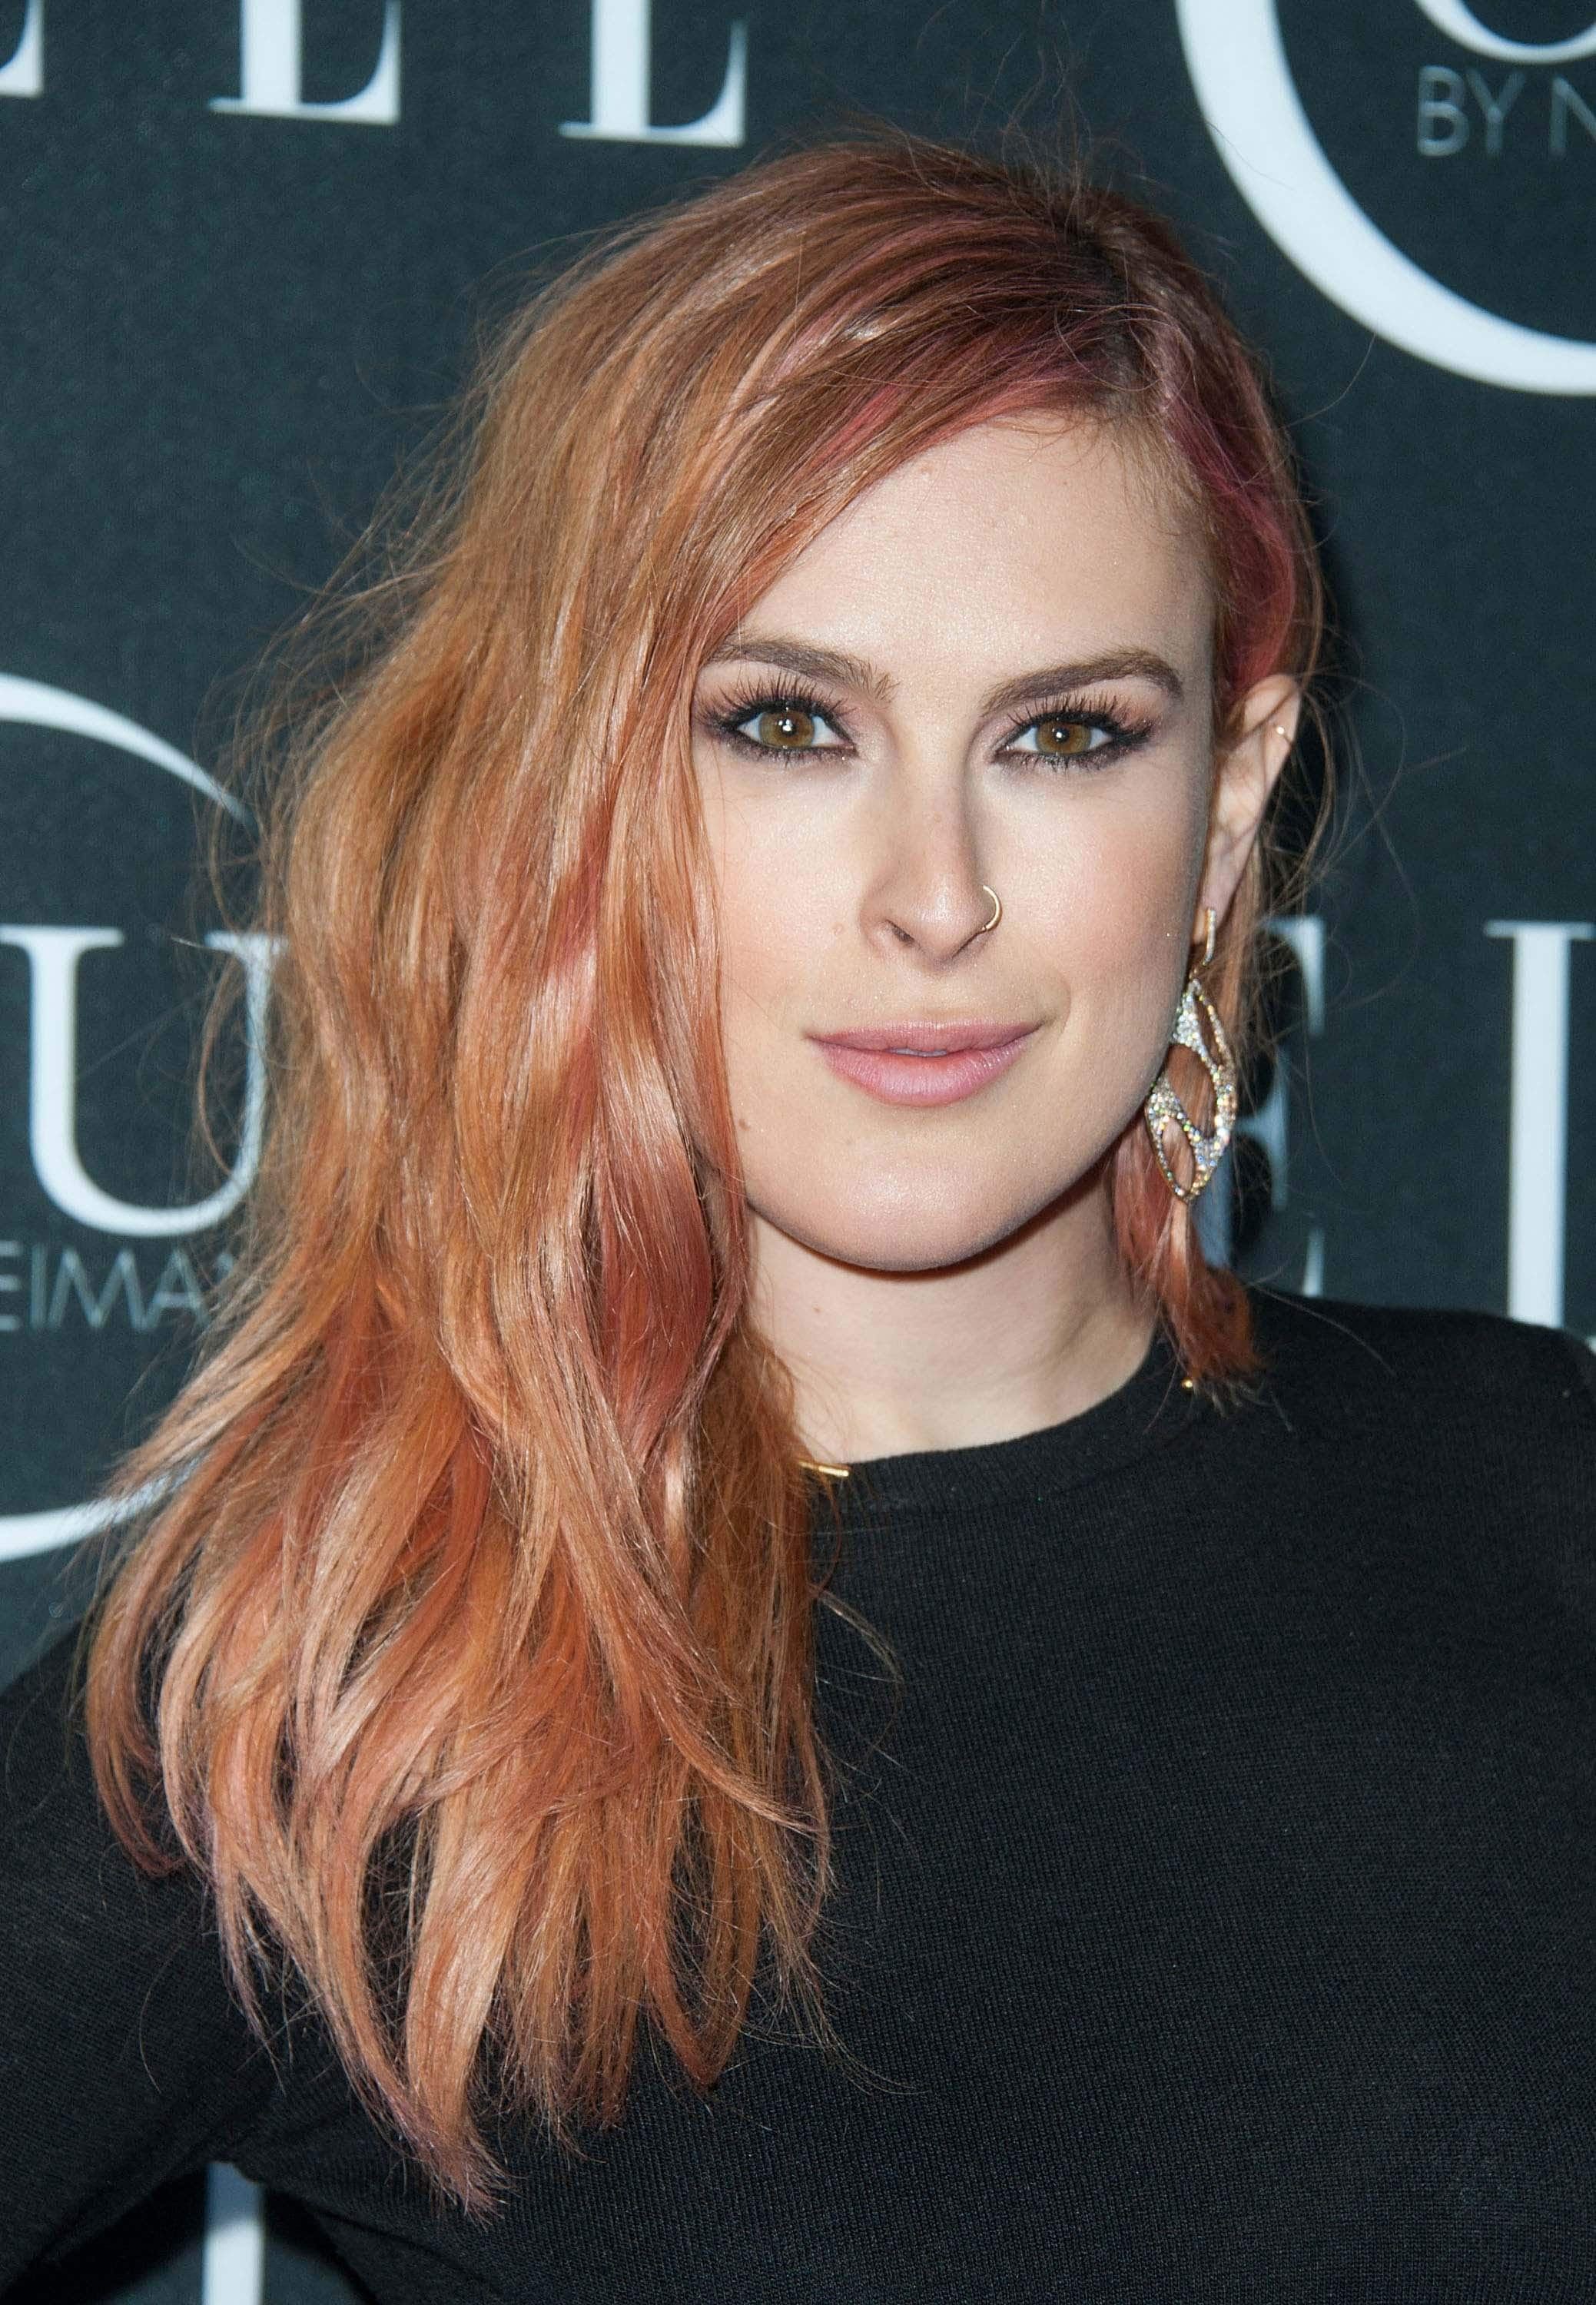 Rumer Willis rose gold pink hair